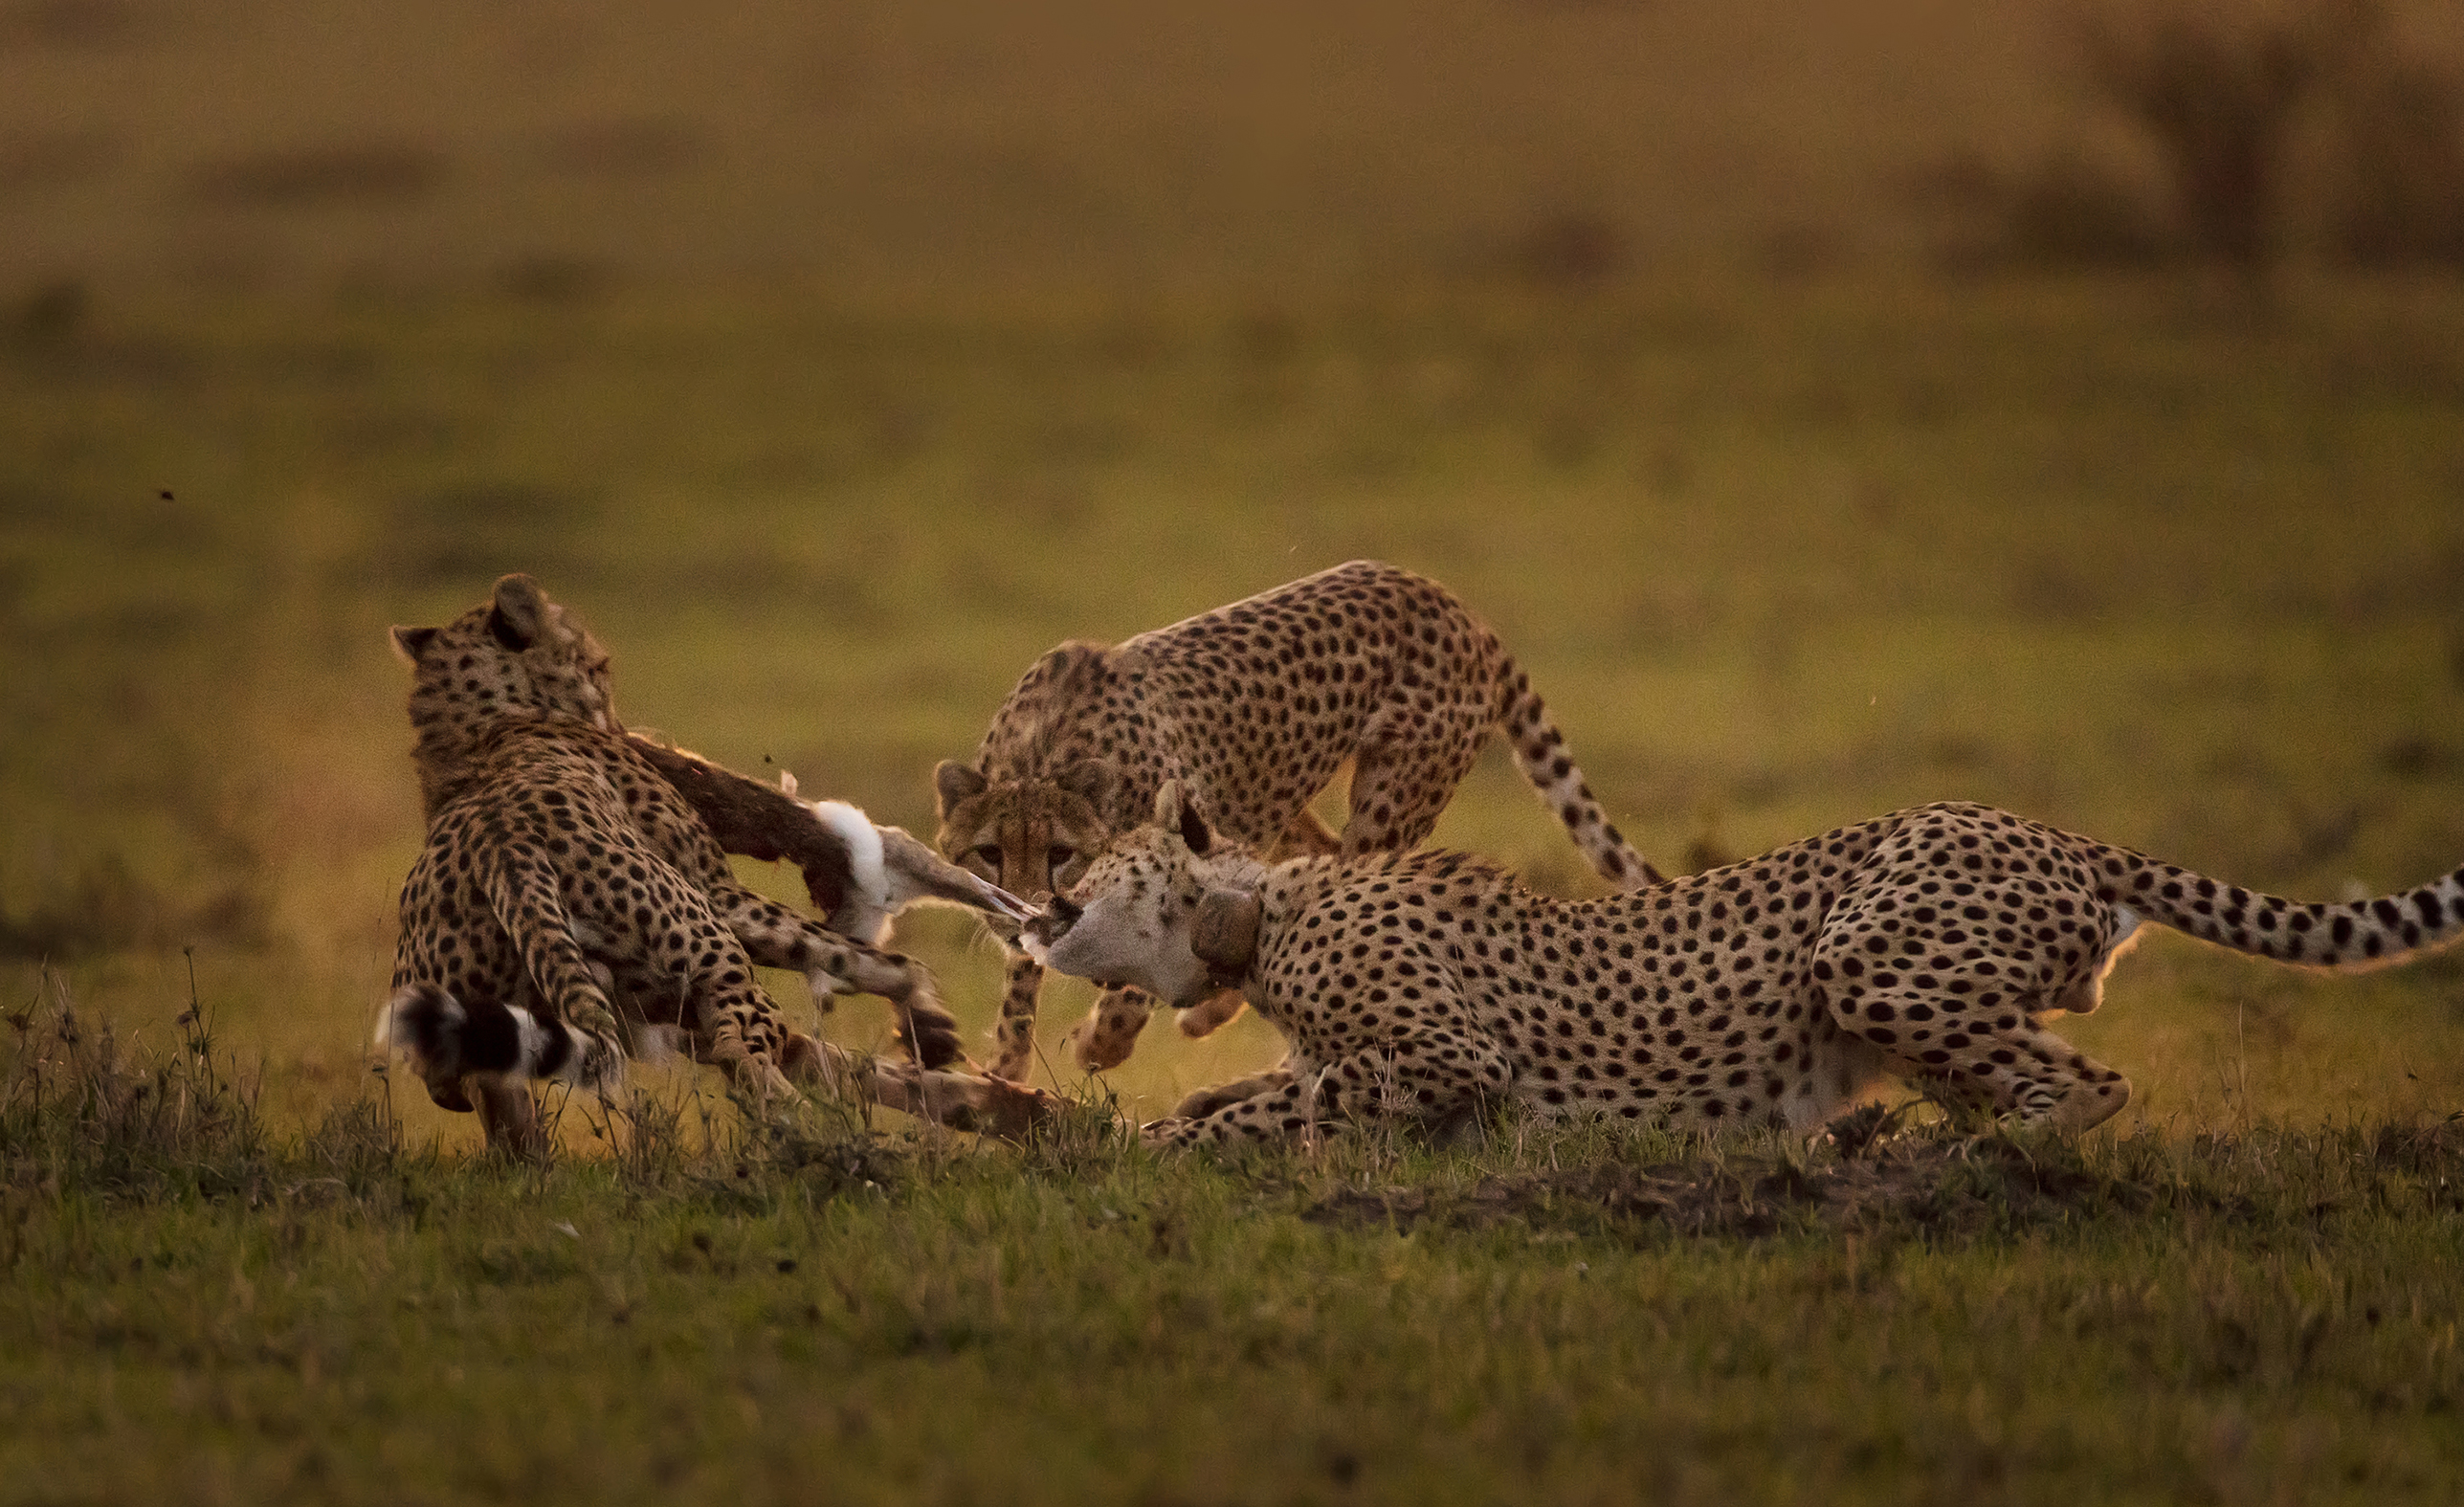 cheetahs tear apart a rabbit after hunting in Maasai Mara on a ClementWild Photo Safari